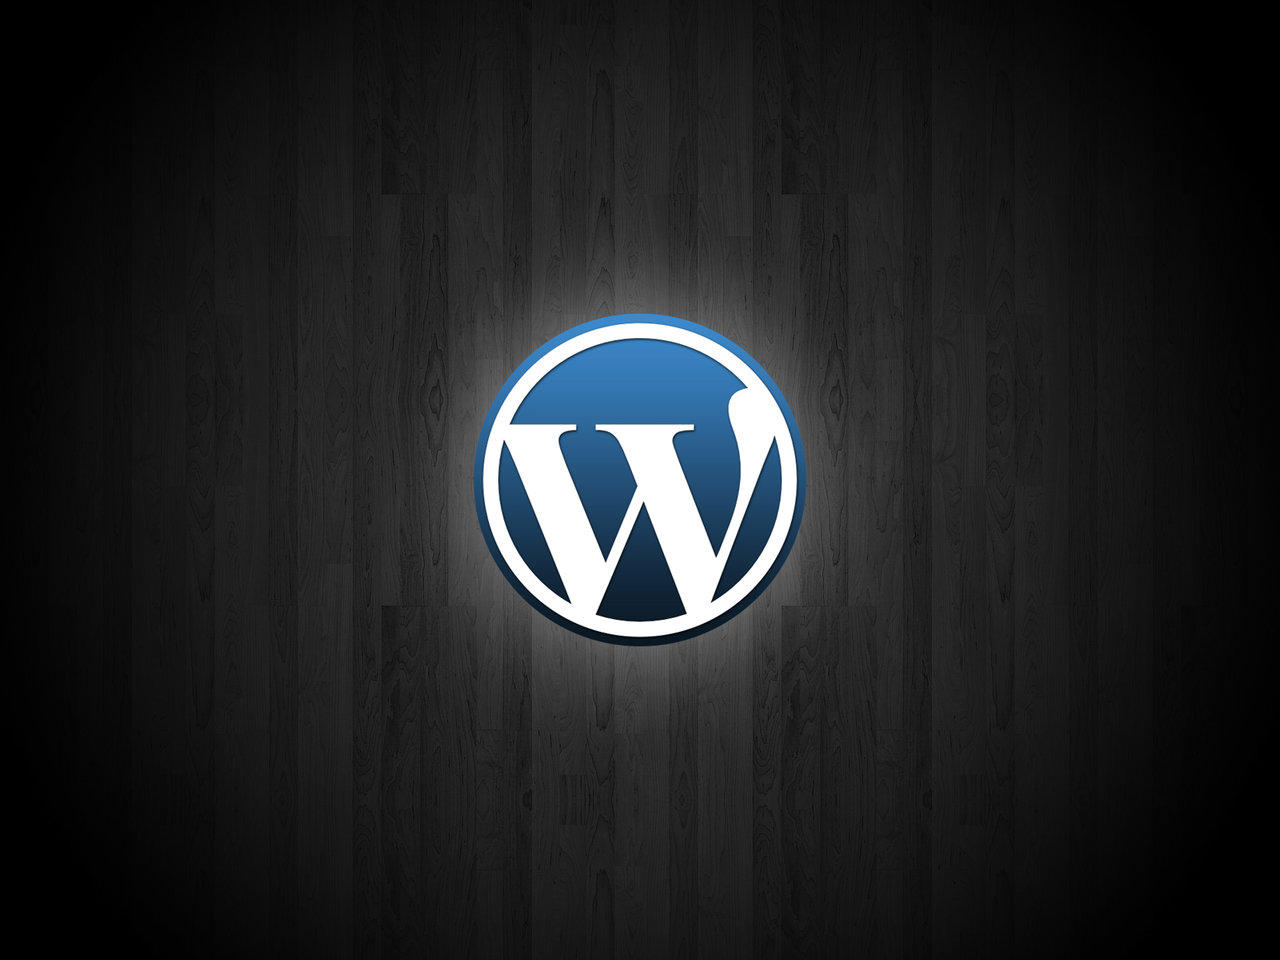 WordPress Multisite / Network Installation by lucky512 - 31046